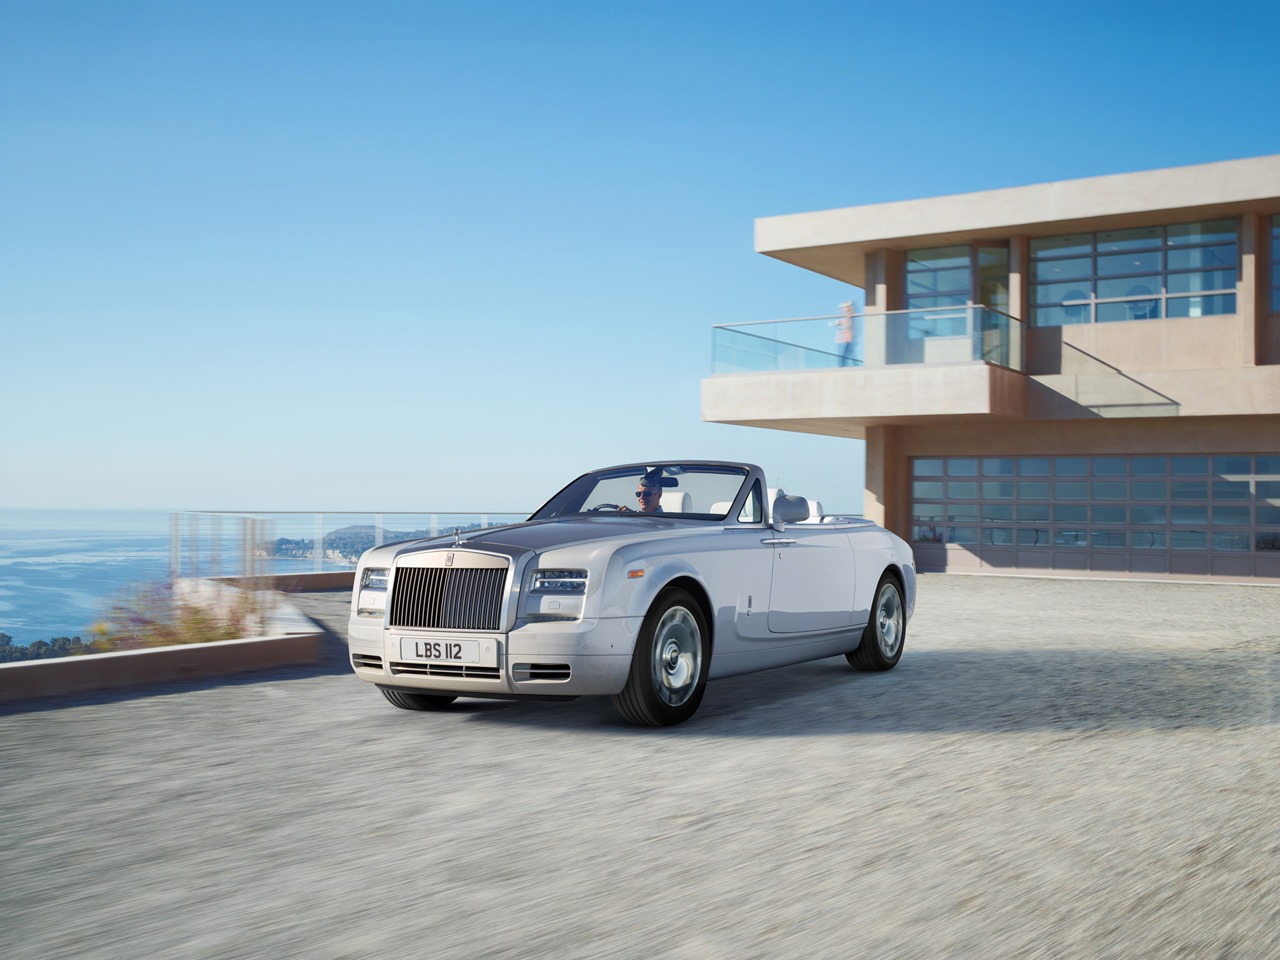 2012 Rolls royce Phantom Drophead Coupe #12